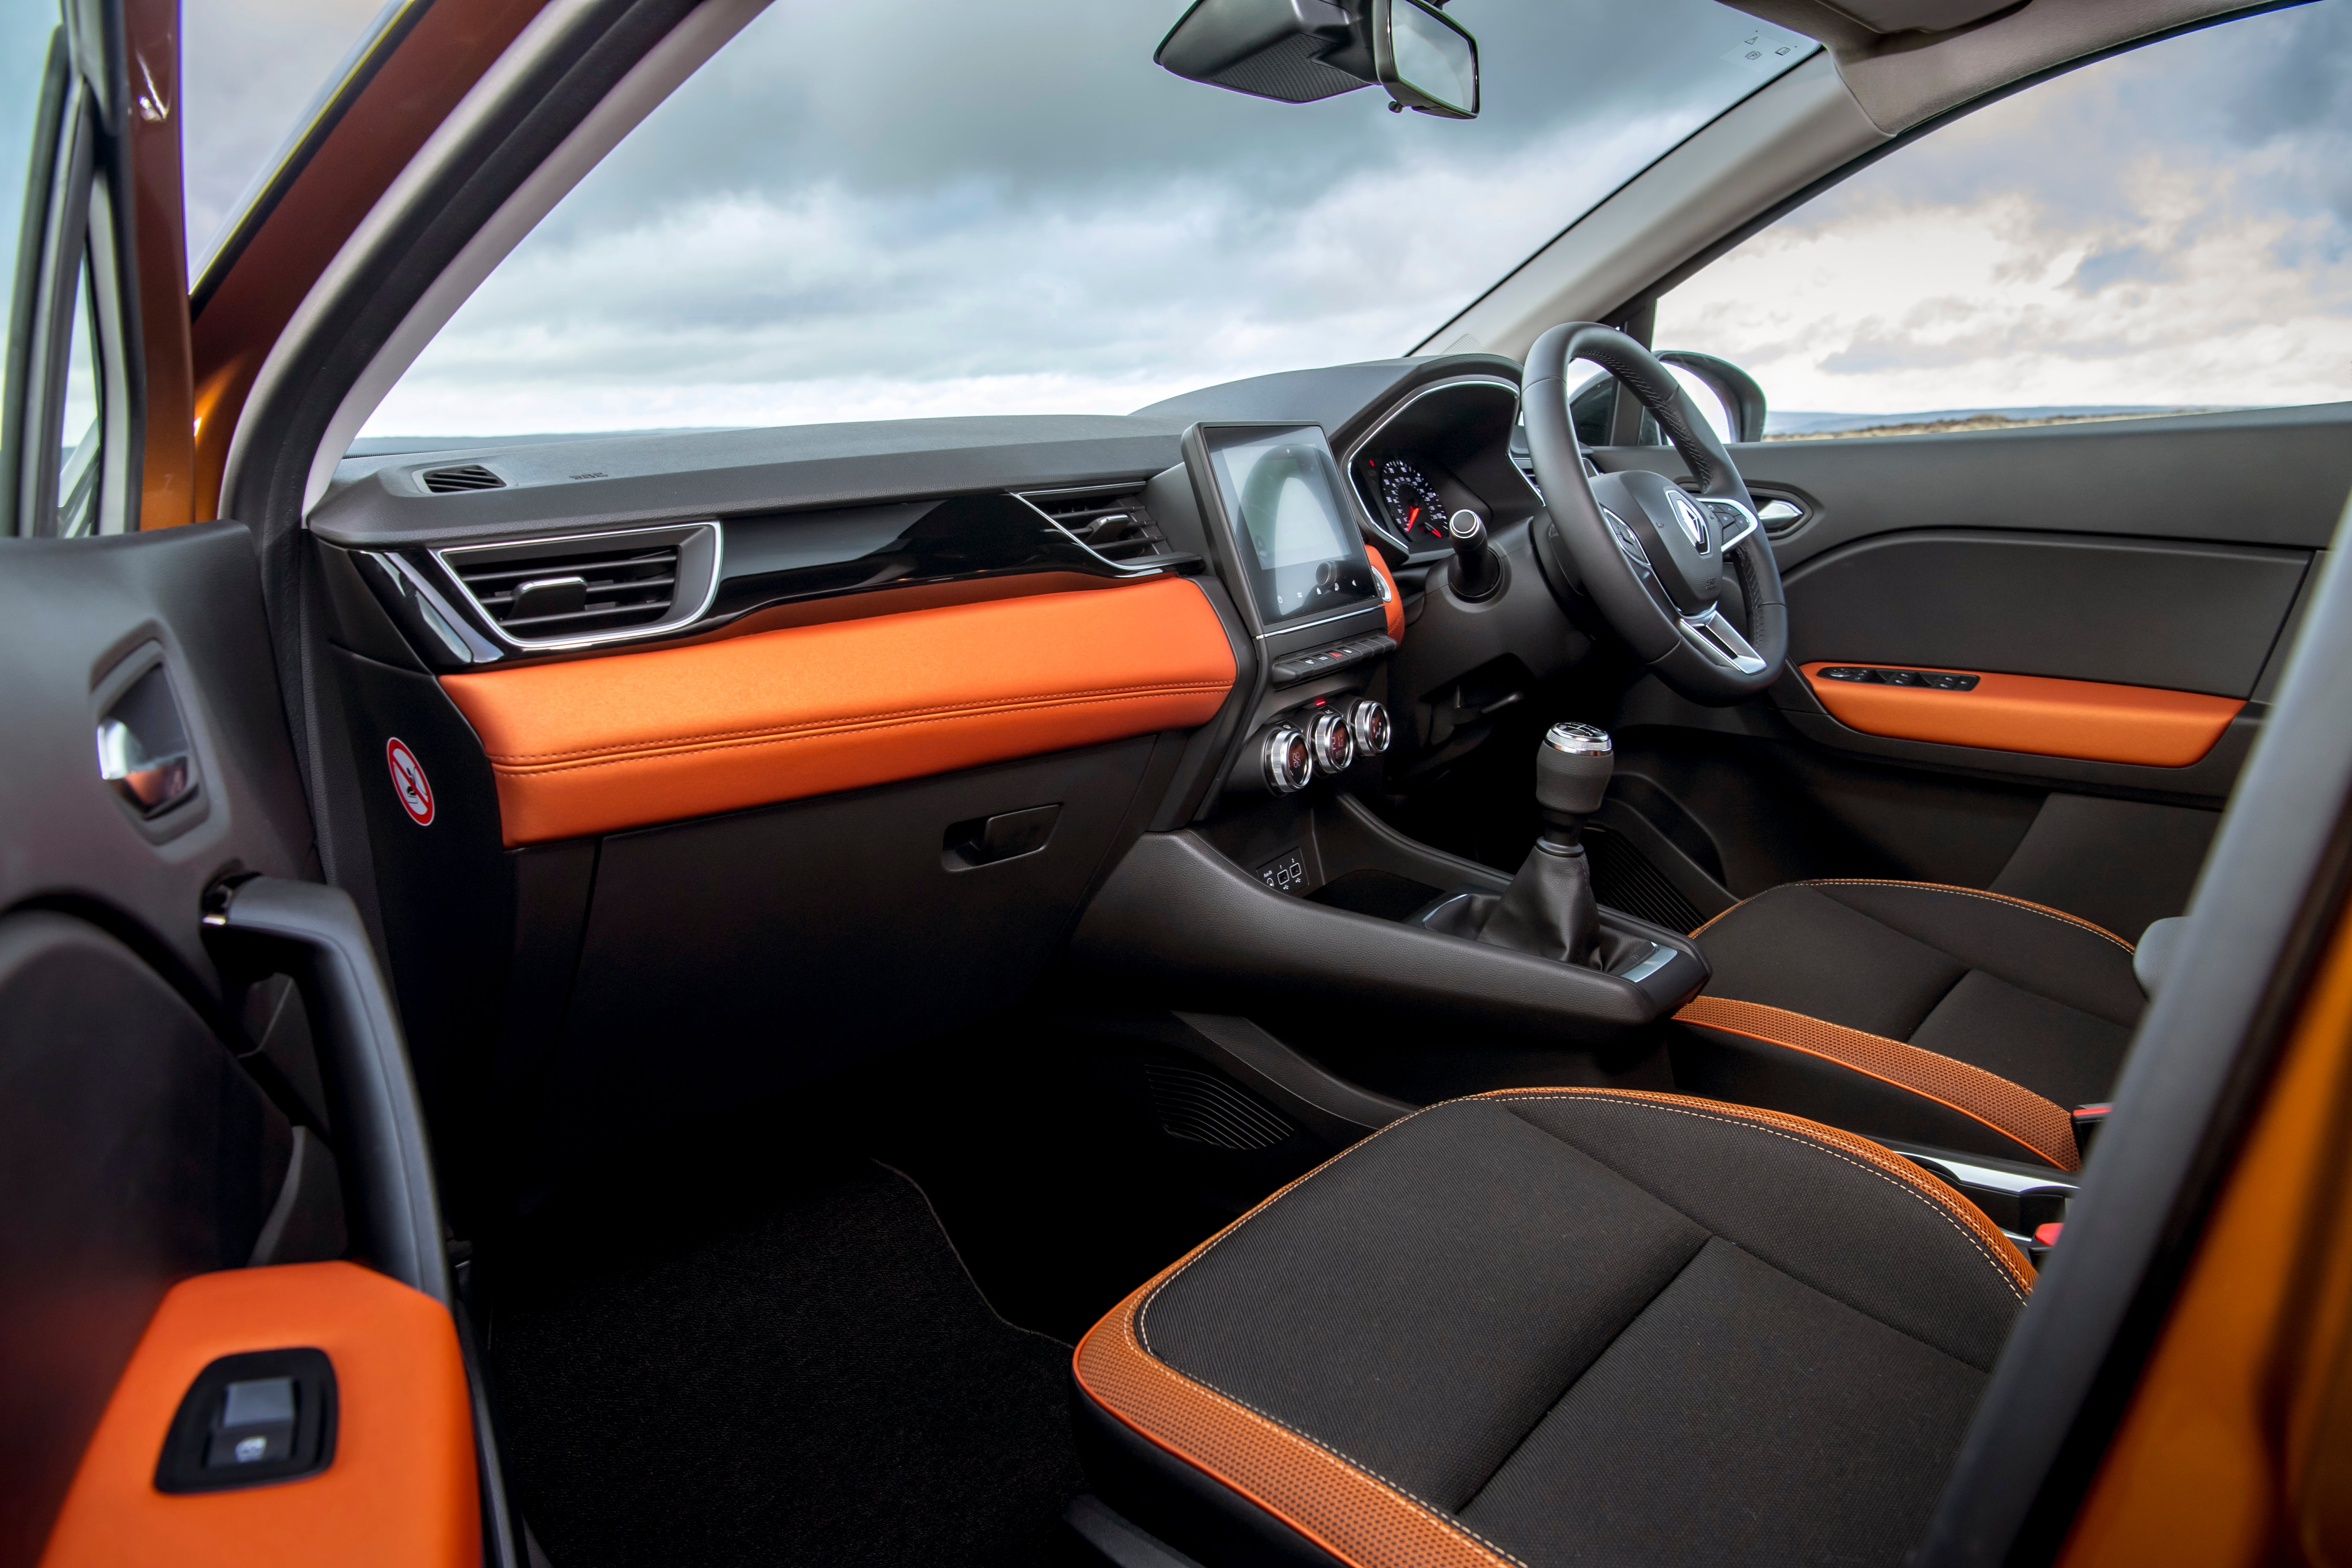 Renault Captur Review 2021: Front interior and passenger space